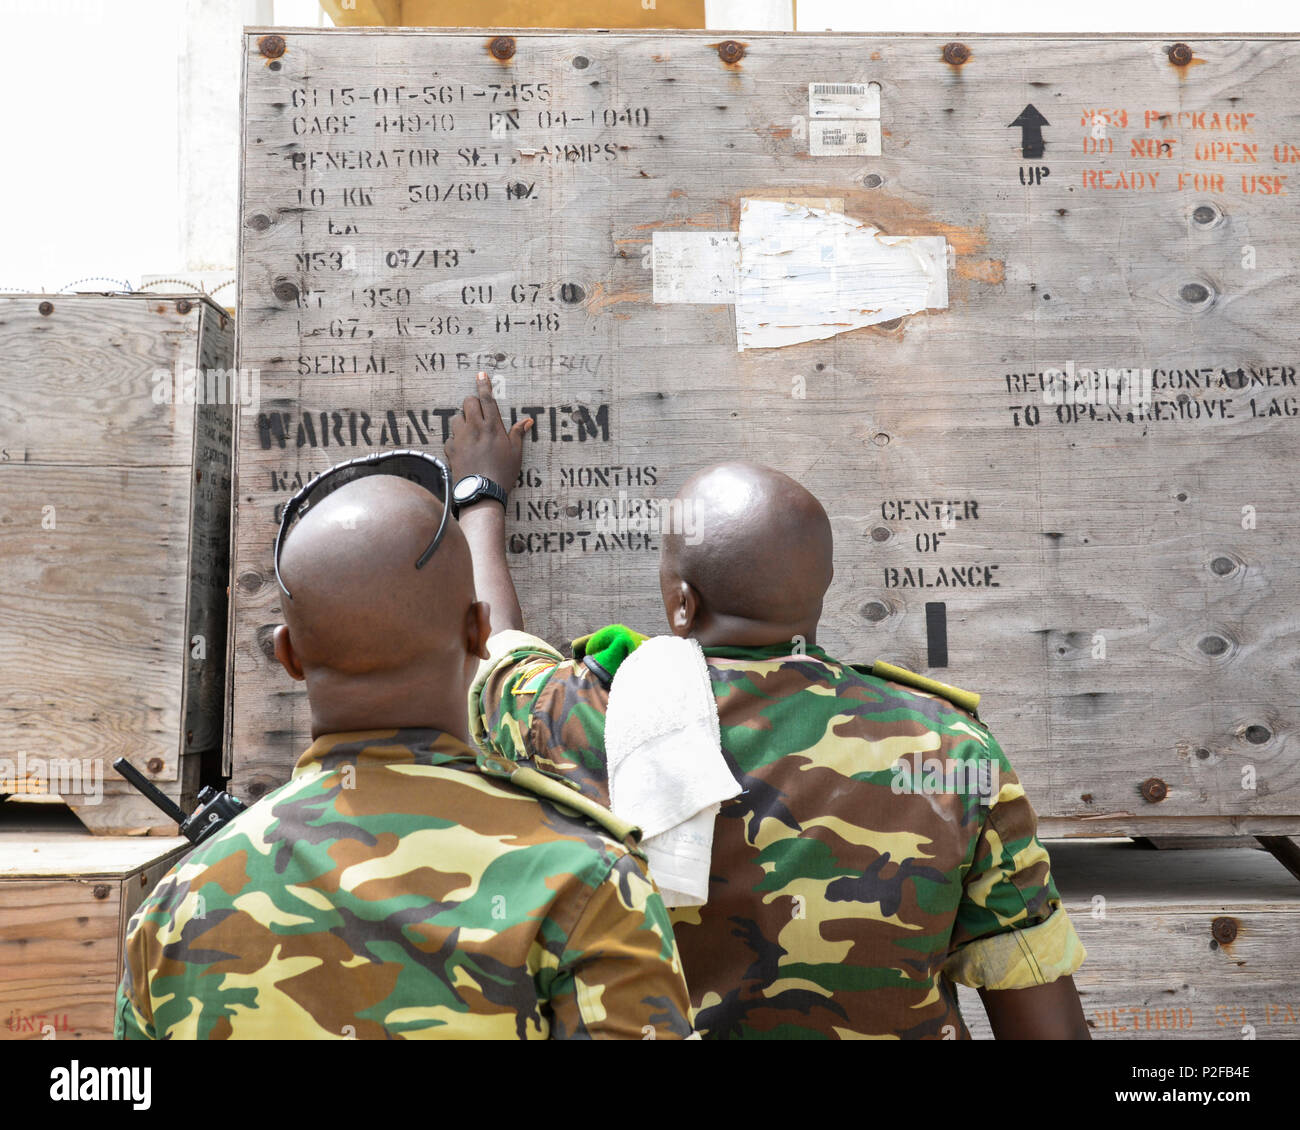 Soldiers from the Burundi National Defense Force verify a power